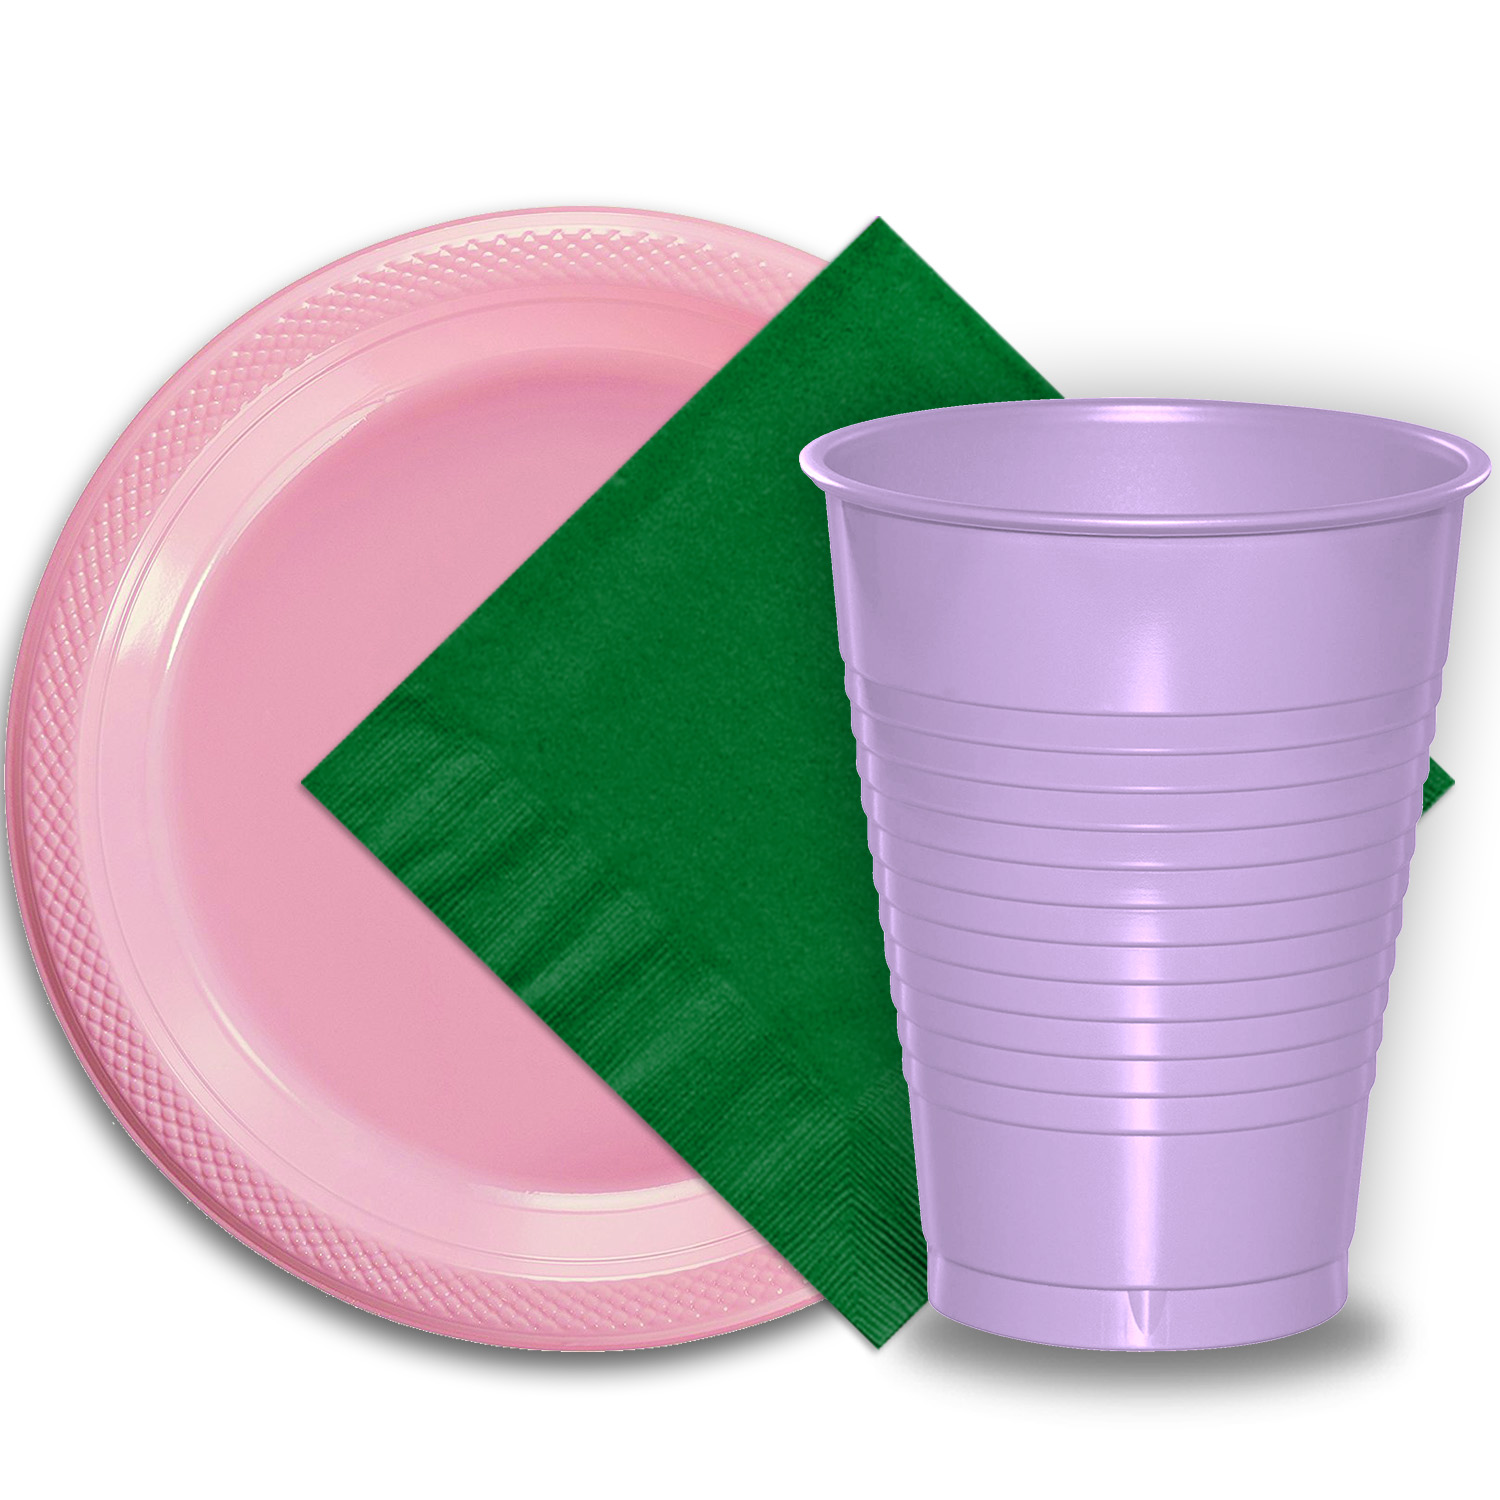 "50 Pink Plastic Plates (9""), 50 Lavender Plastic Cups (12 oz.), and 50 Emerald Green Paper Napkins, Dazzelling Colored Disposable Party Supplies Tableware Set for Fifty Guests."